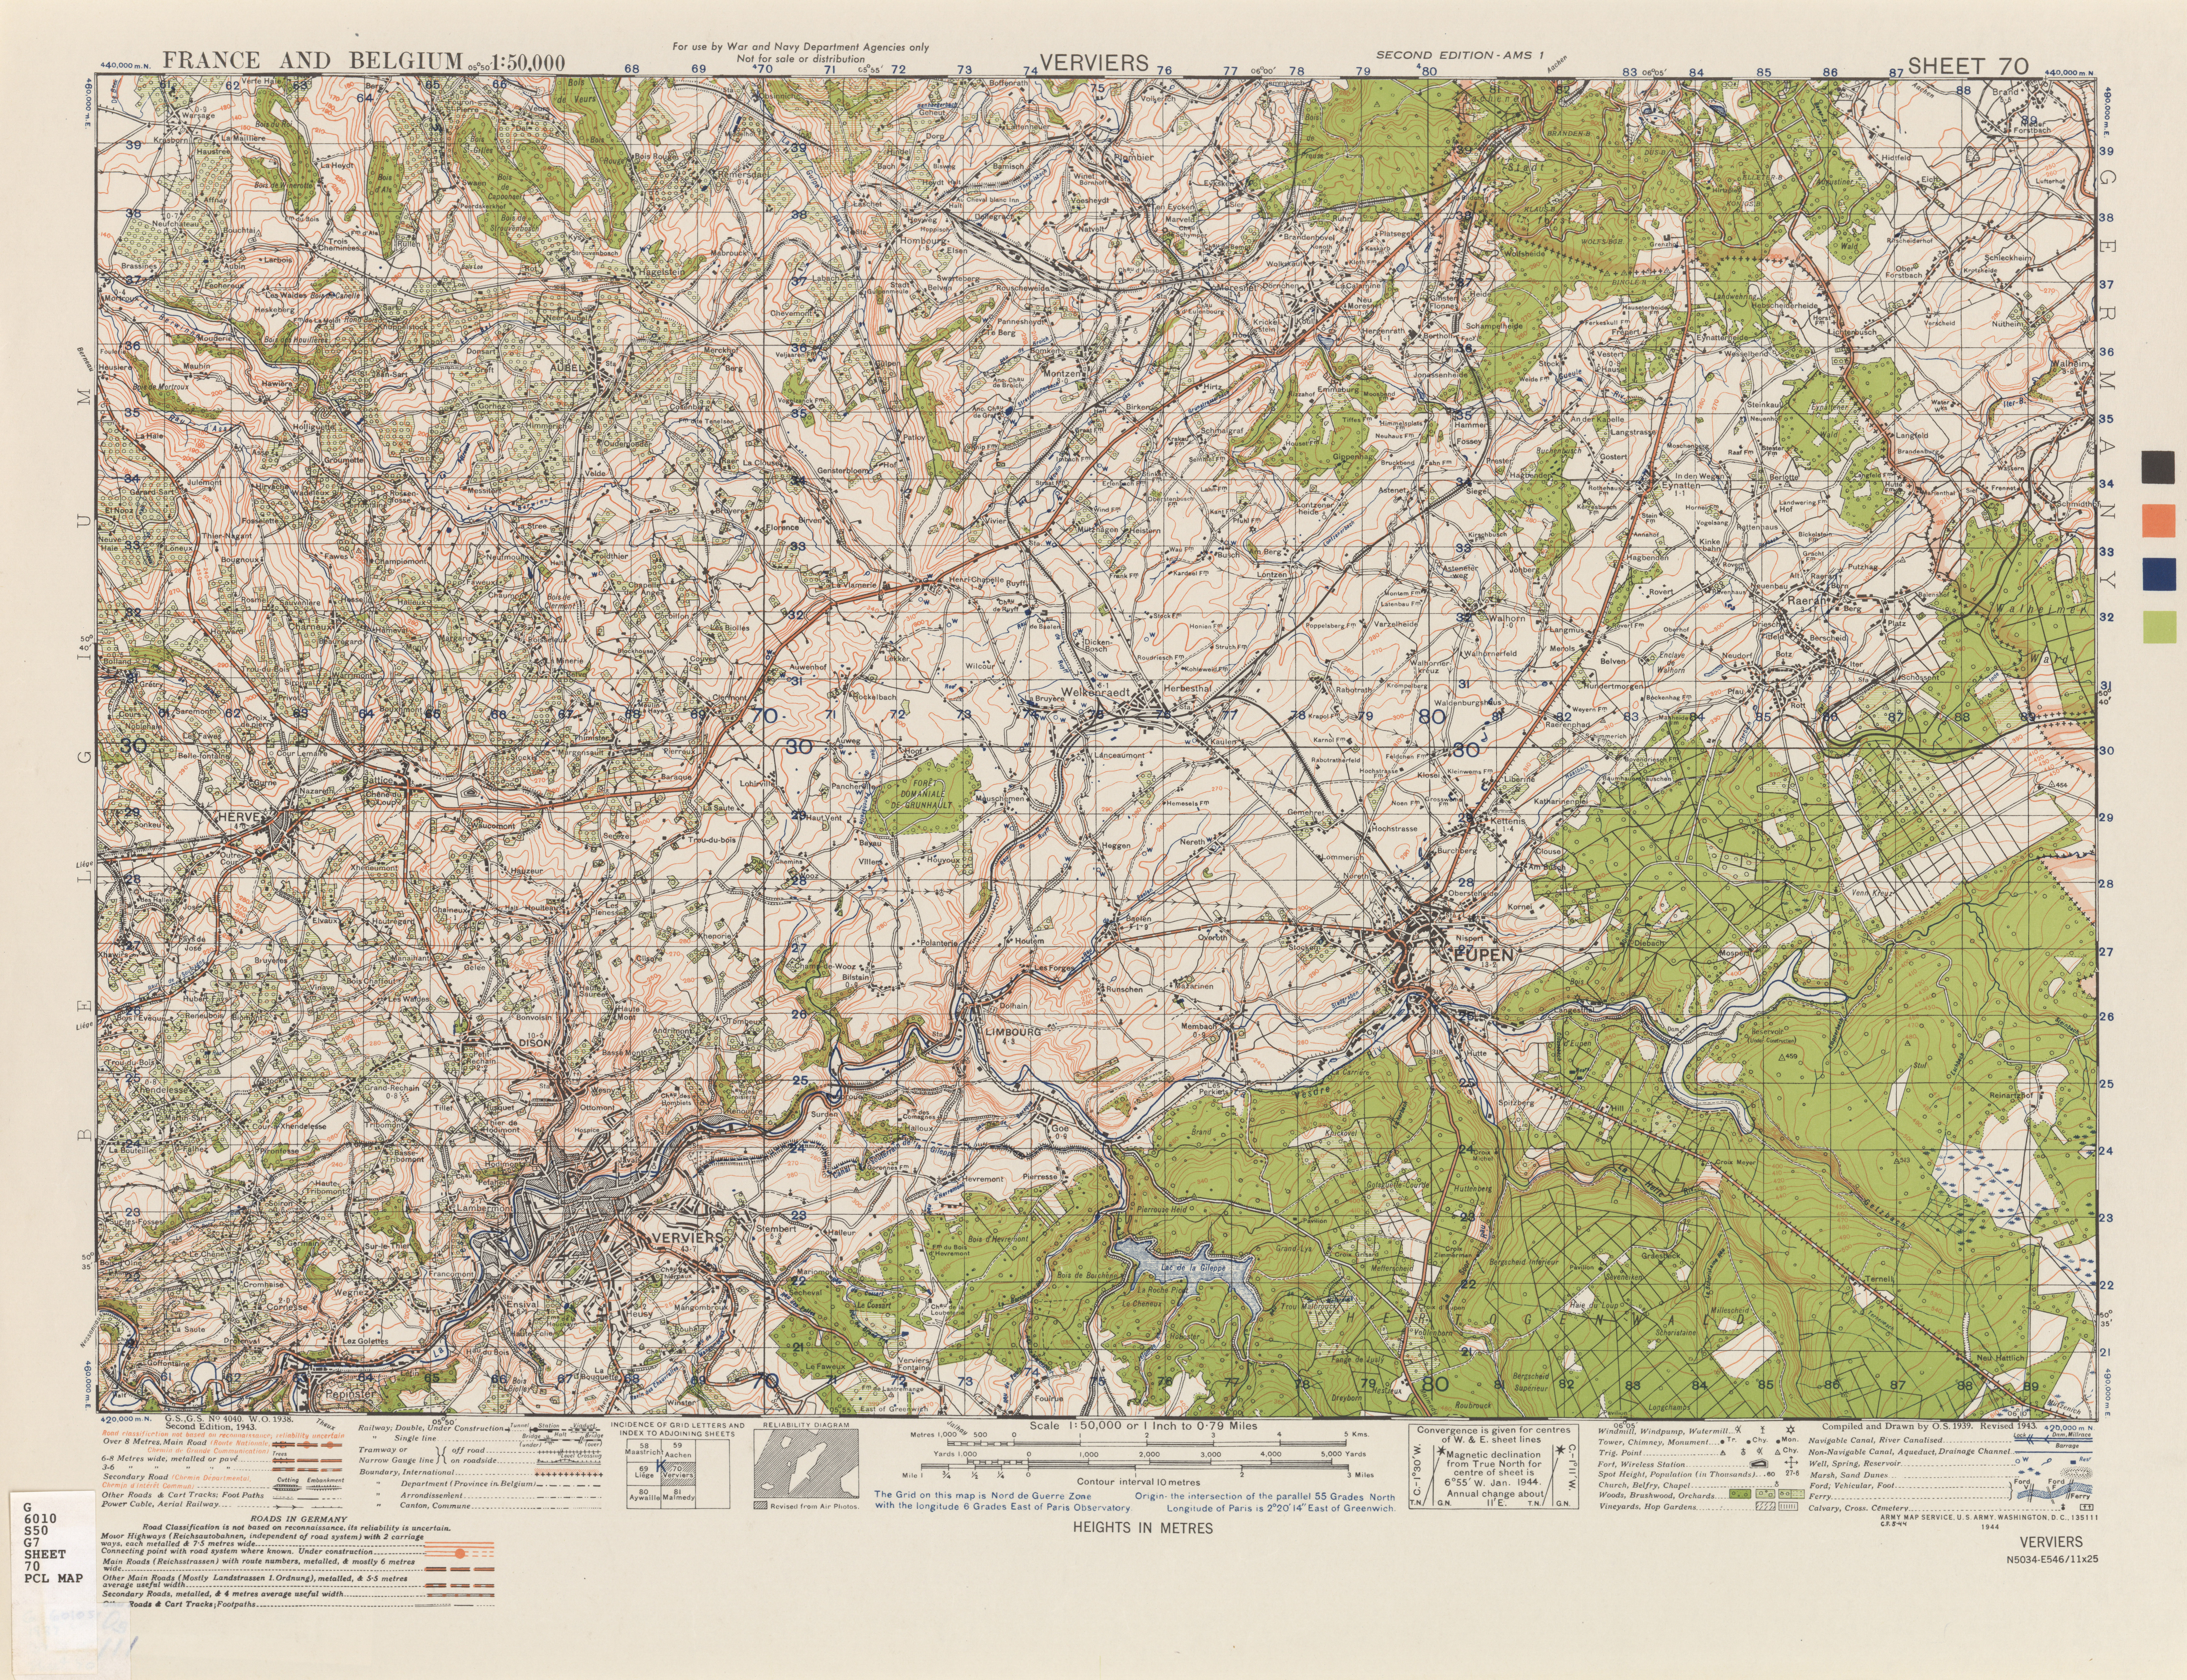 France and Belgium AMS Topographic Maps PerryCasta eda Map – Map of France and Belgium